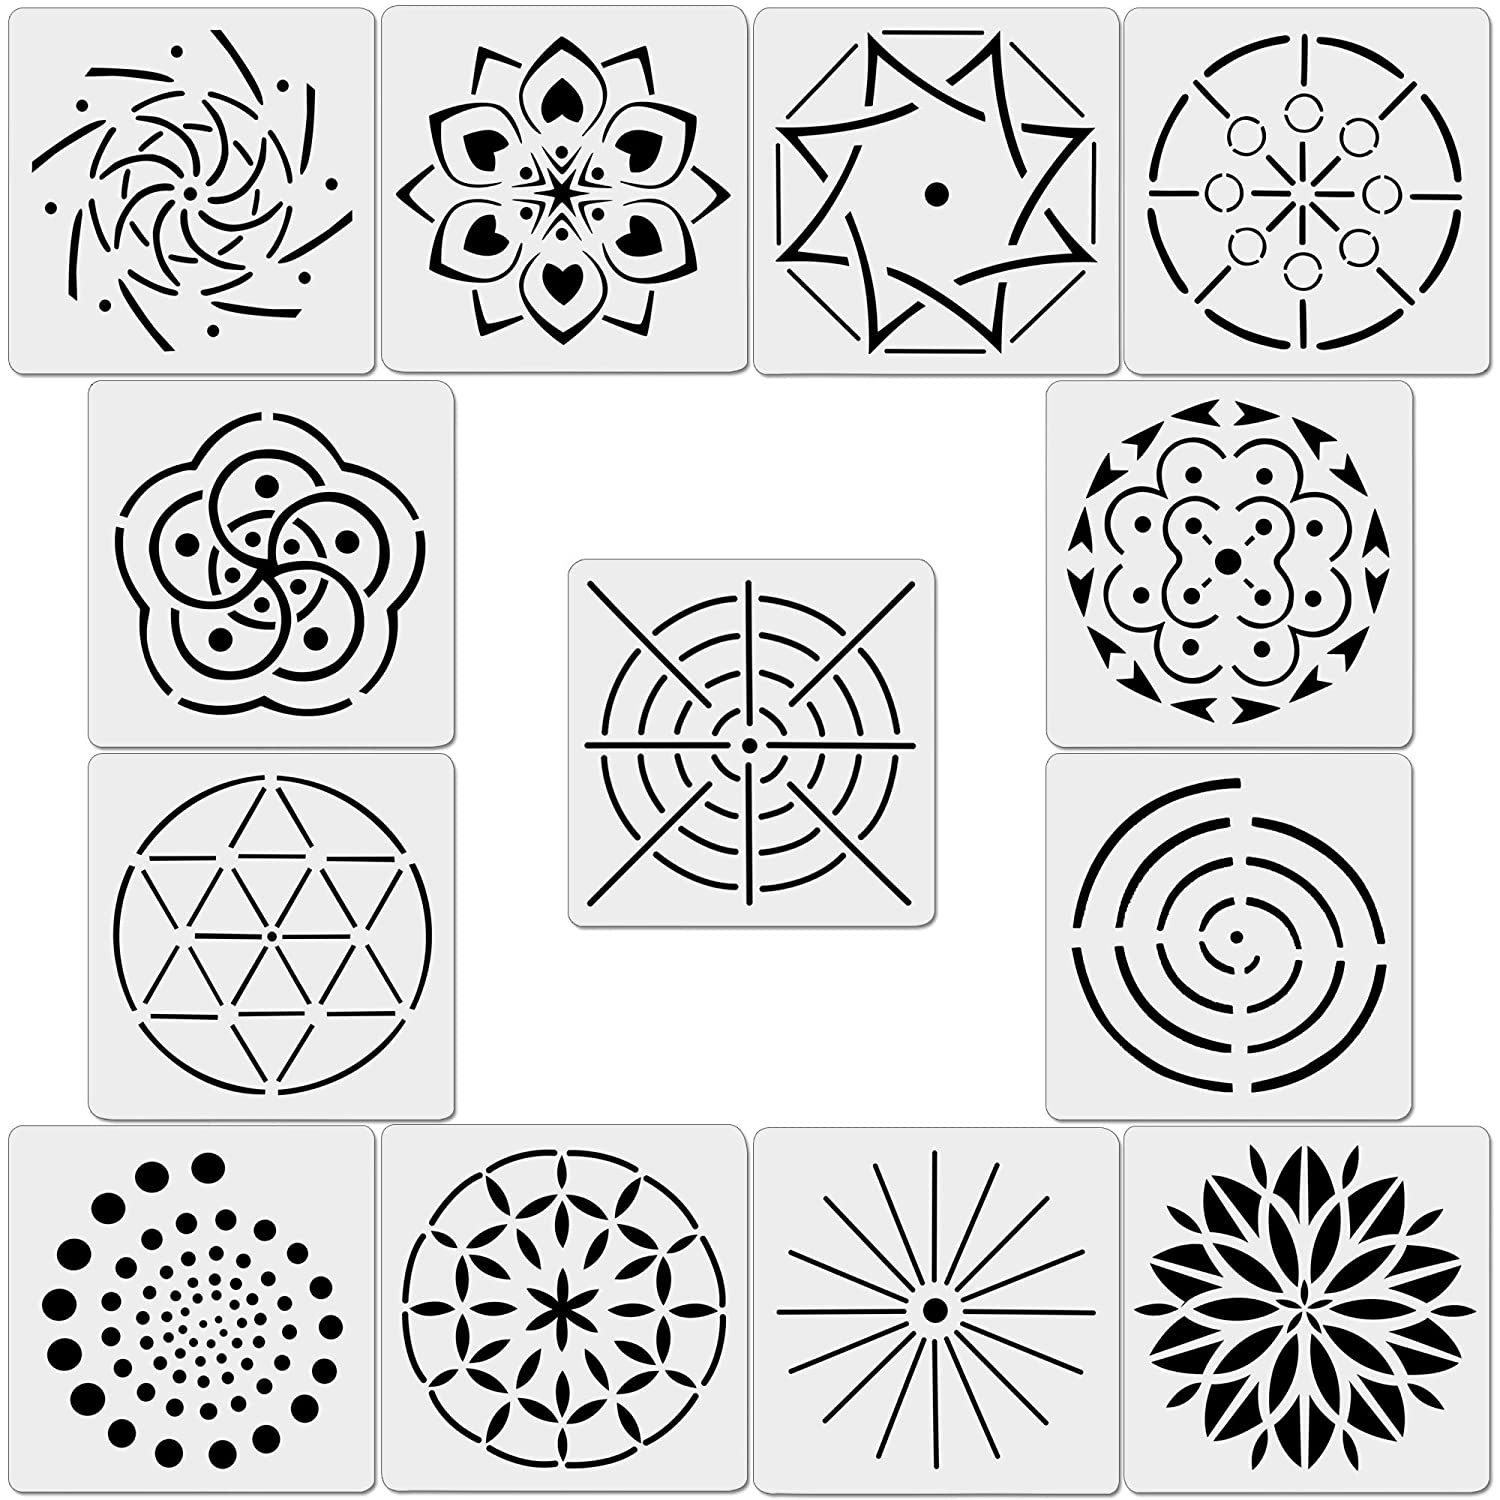 Mandala Template | Amazon Com 13 Pack Mandala Dot Painting Templates Stencils For Diy